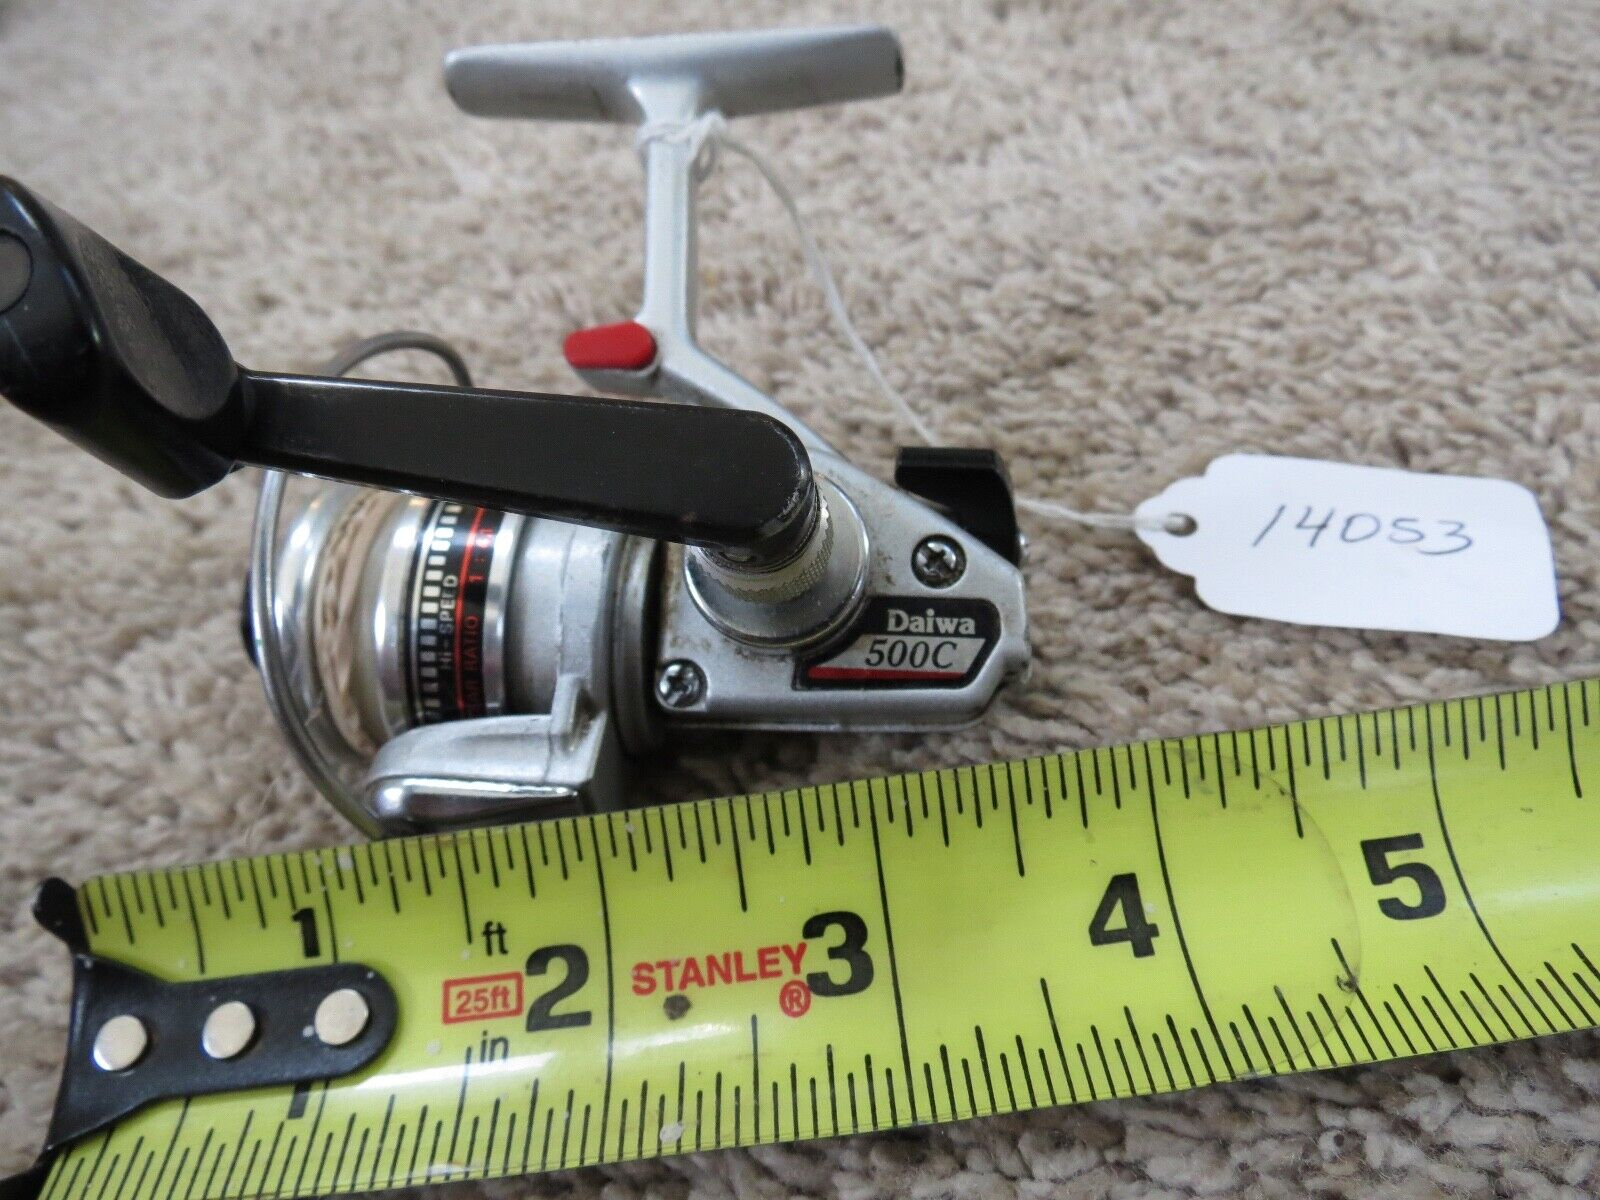 Daiwa 500c trout pesca reel fatto in Japan Lot 14053